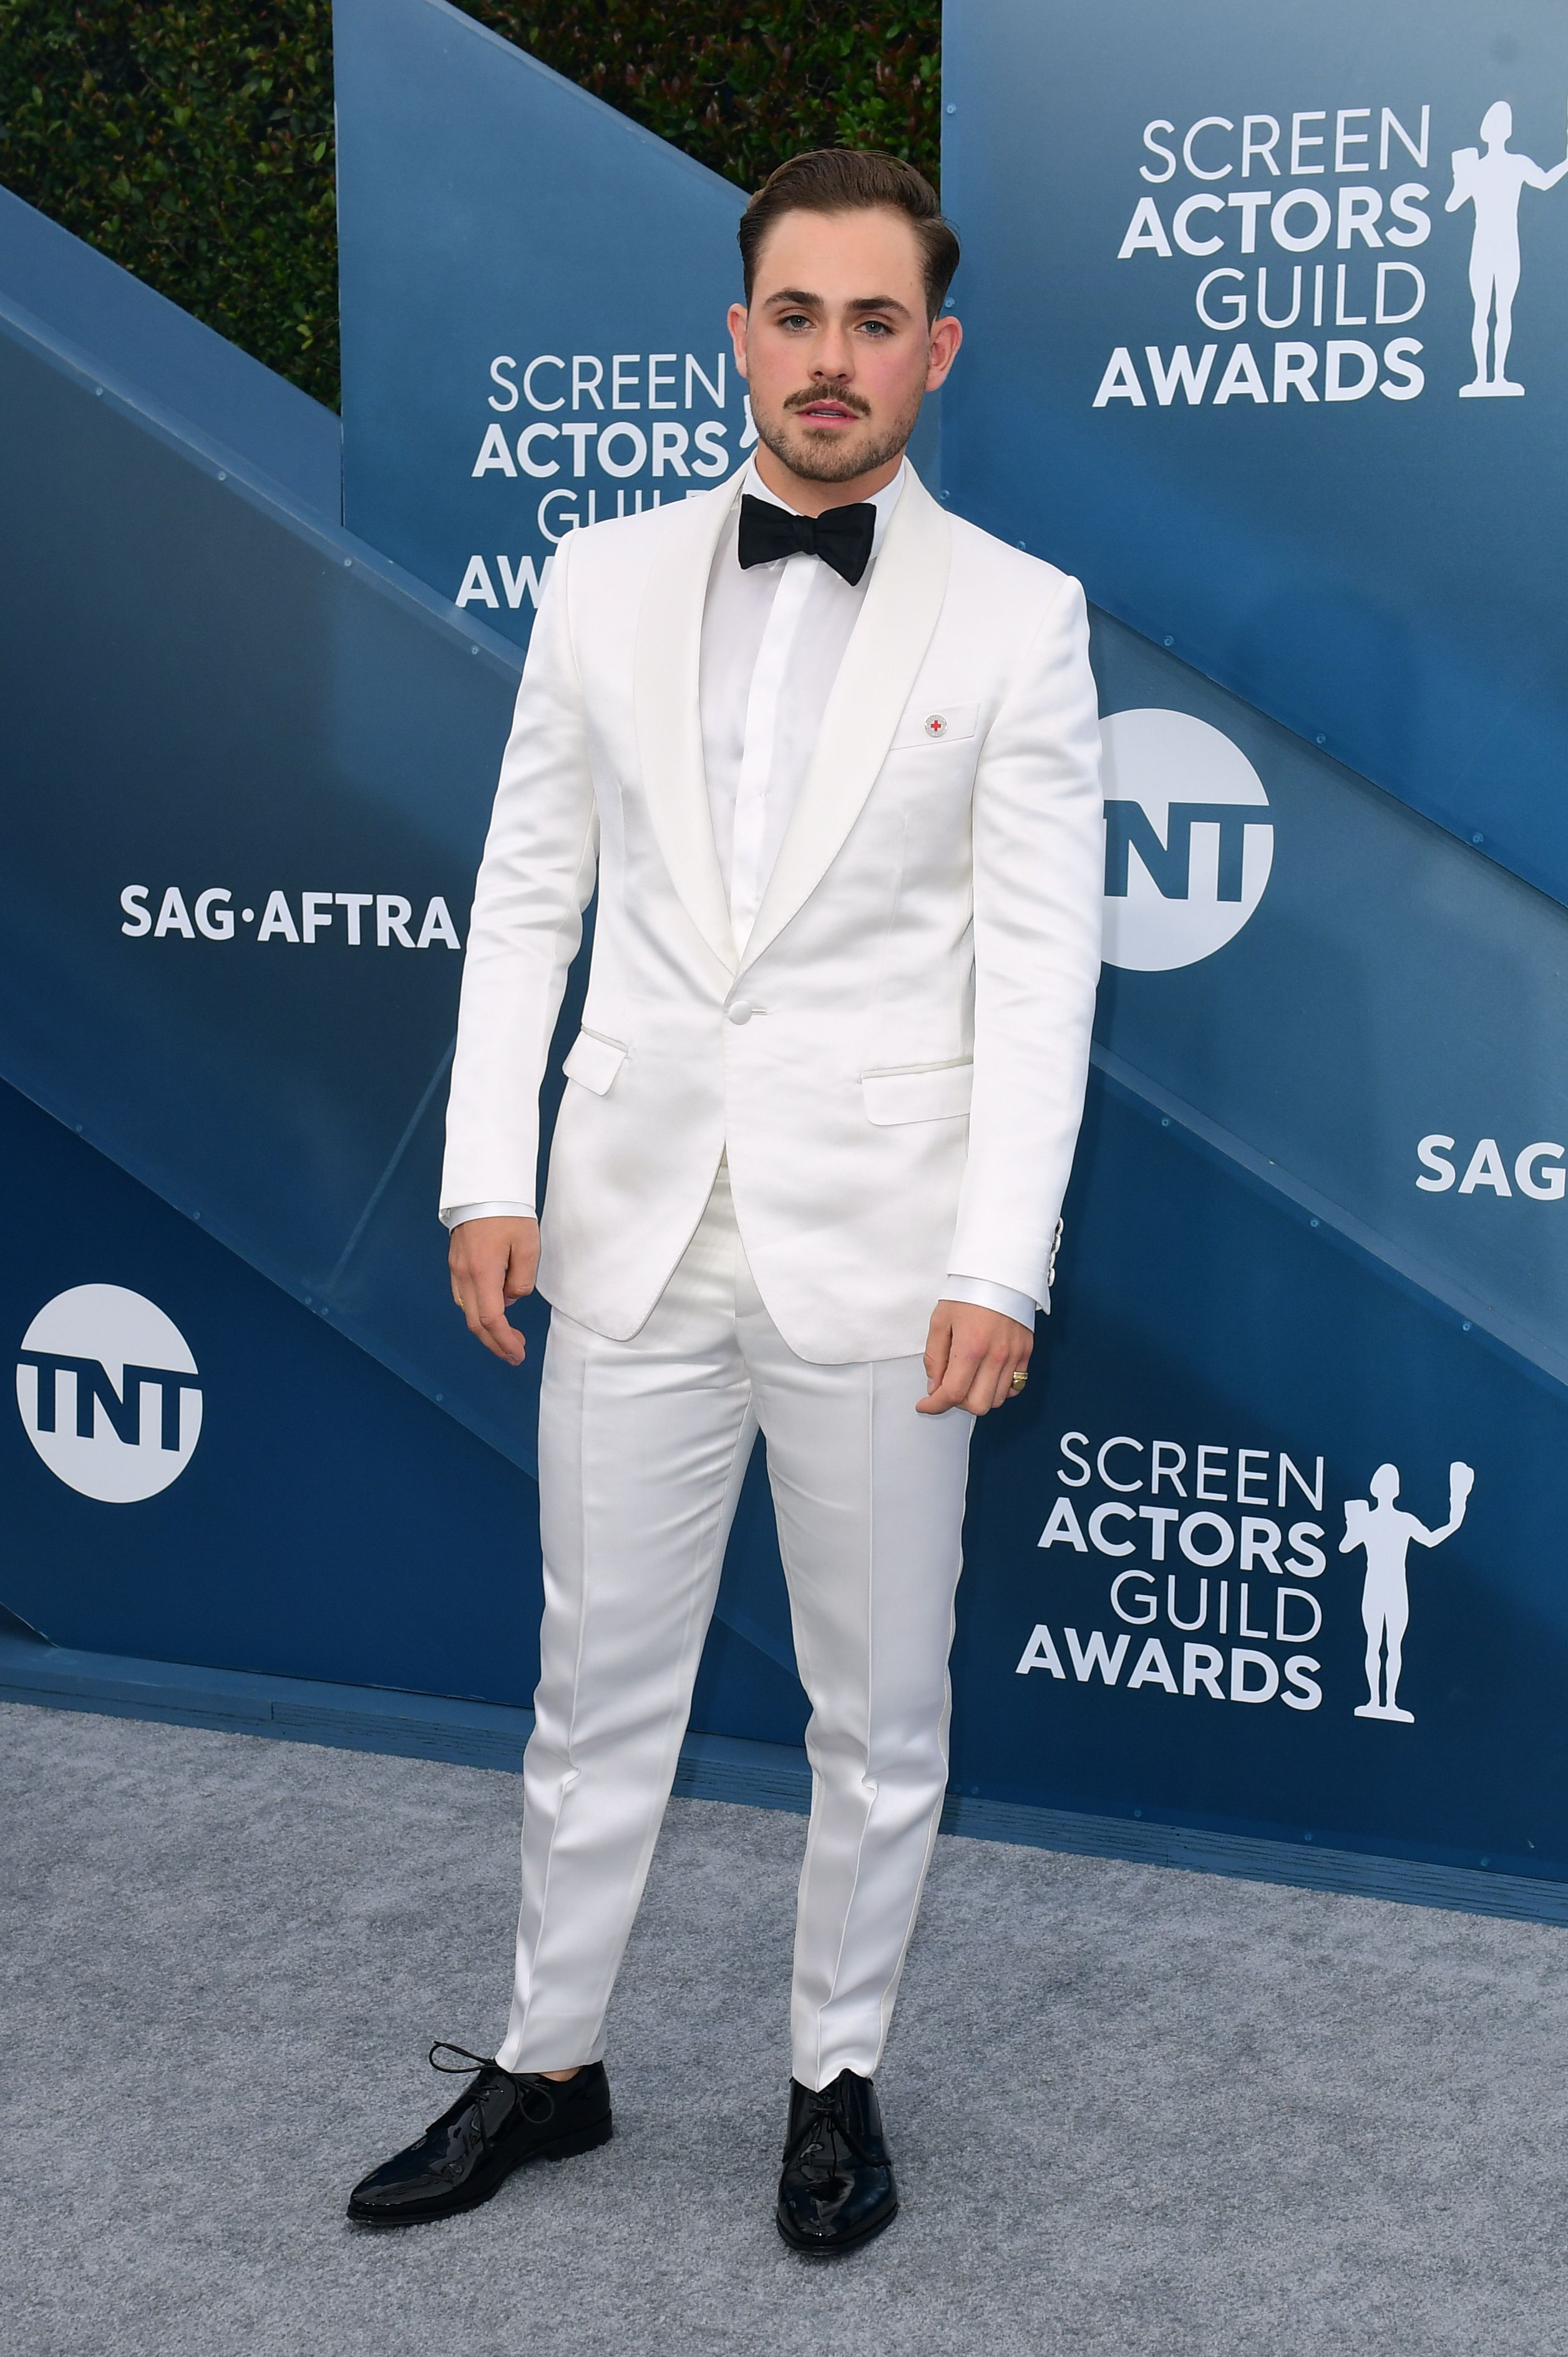 Australian actor Dacre Montgomery arrives for the 26th Annual Screen Actors Guild Awards at the Shrine Auditorium in Los Angeles on January 19, 2020. (Photo by FREDERIC J. BROWN / AFP) (Photo by FREDERIC J. BROWN/AFP via Getty Images)